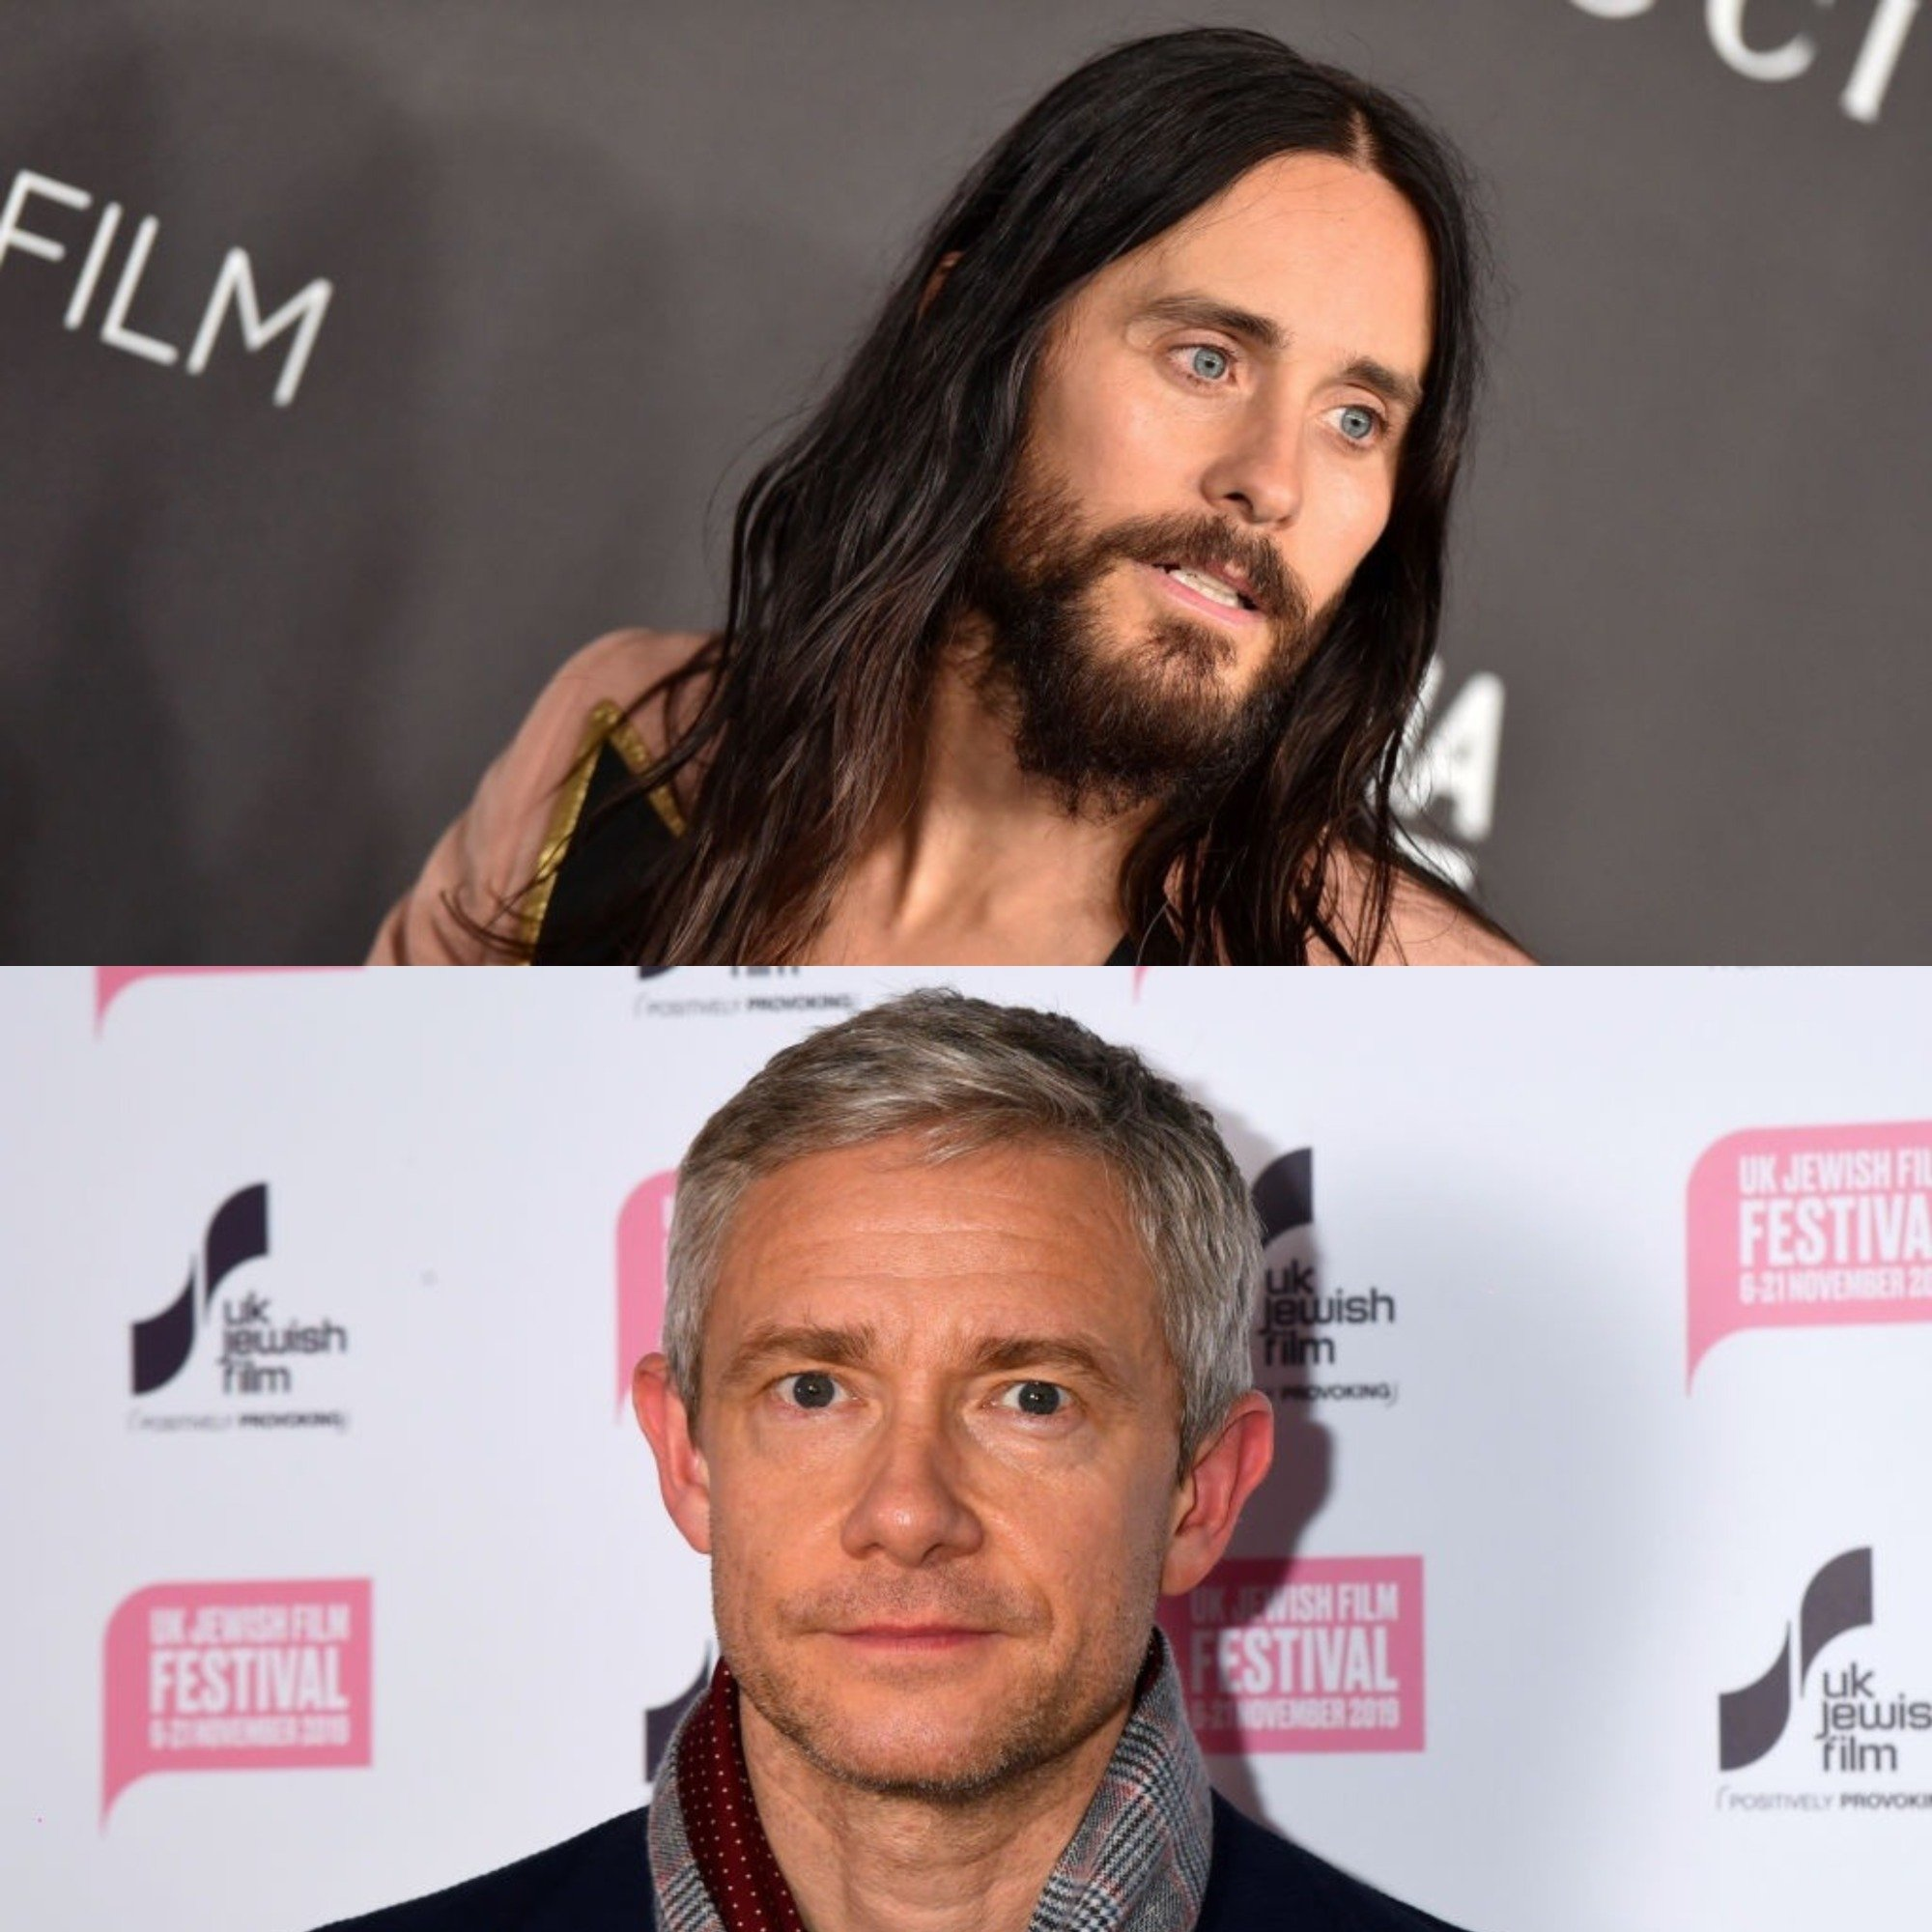 Image credits: Getty Images/FilmMagic/Bauer-Griffin/Axelle - Getty Images/Dave J Hogan